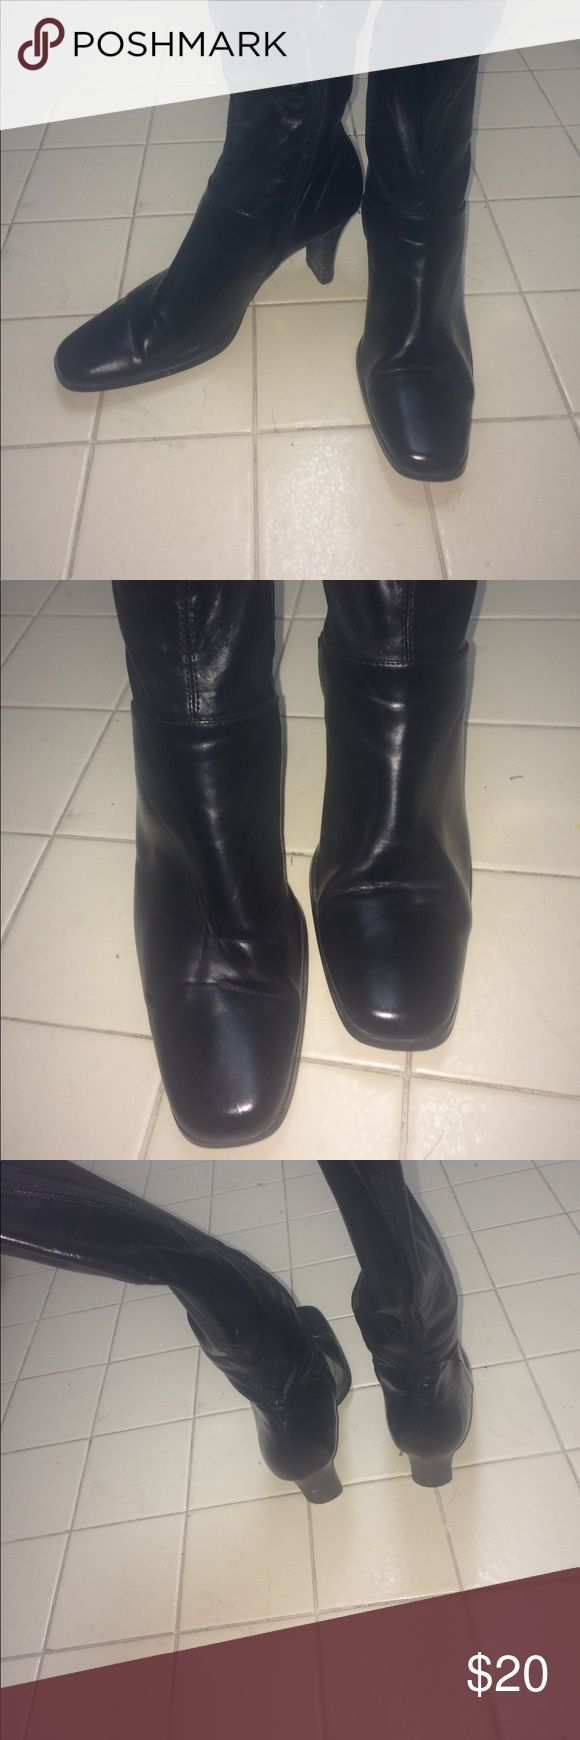 Women Black Heeled Boots All black zip up Heeled Boots. Great condition. Feel free to ask any questions. Offer anything reasonable Shoes Heeled Boots